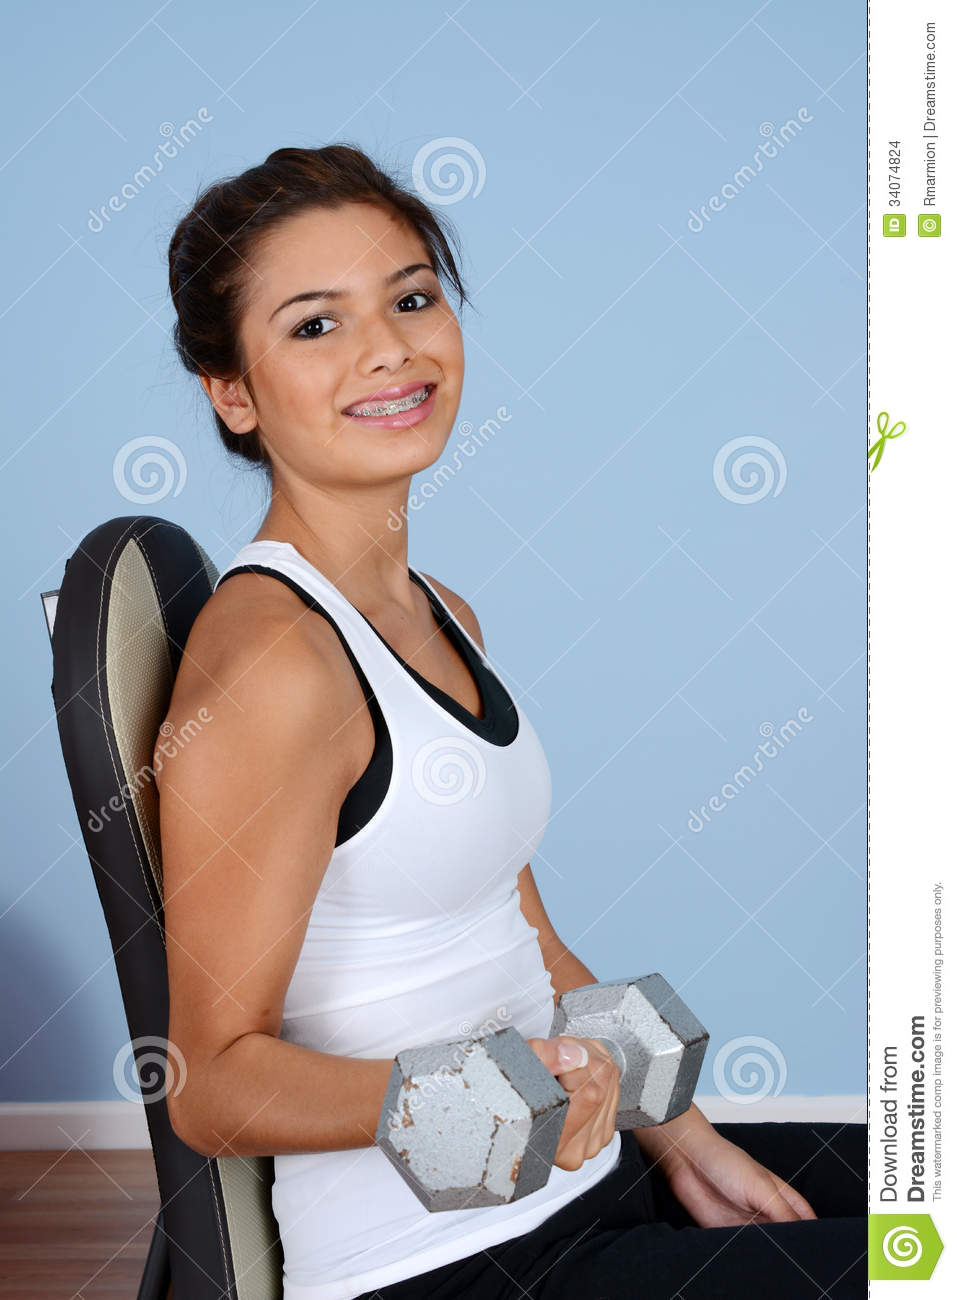 Teen Working Out 77